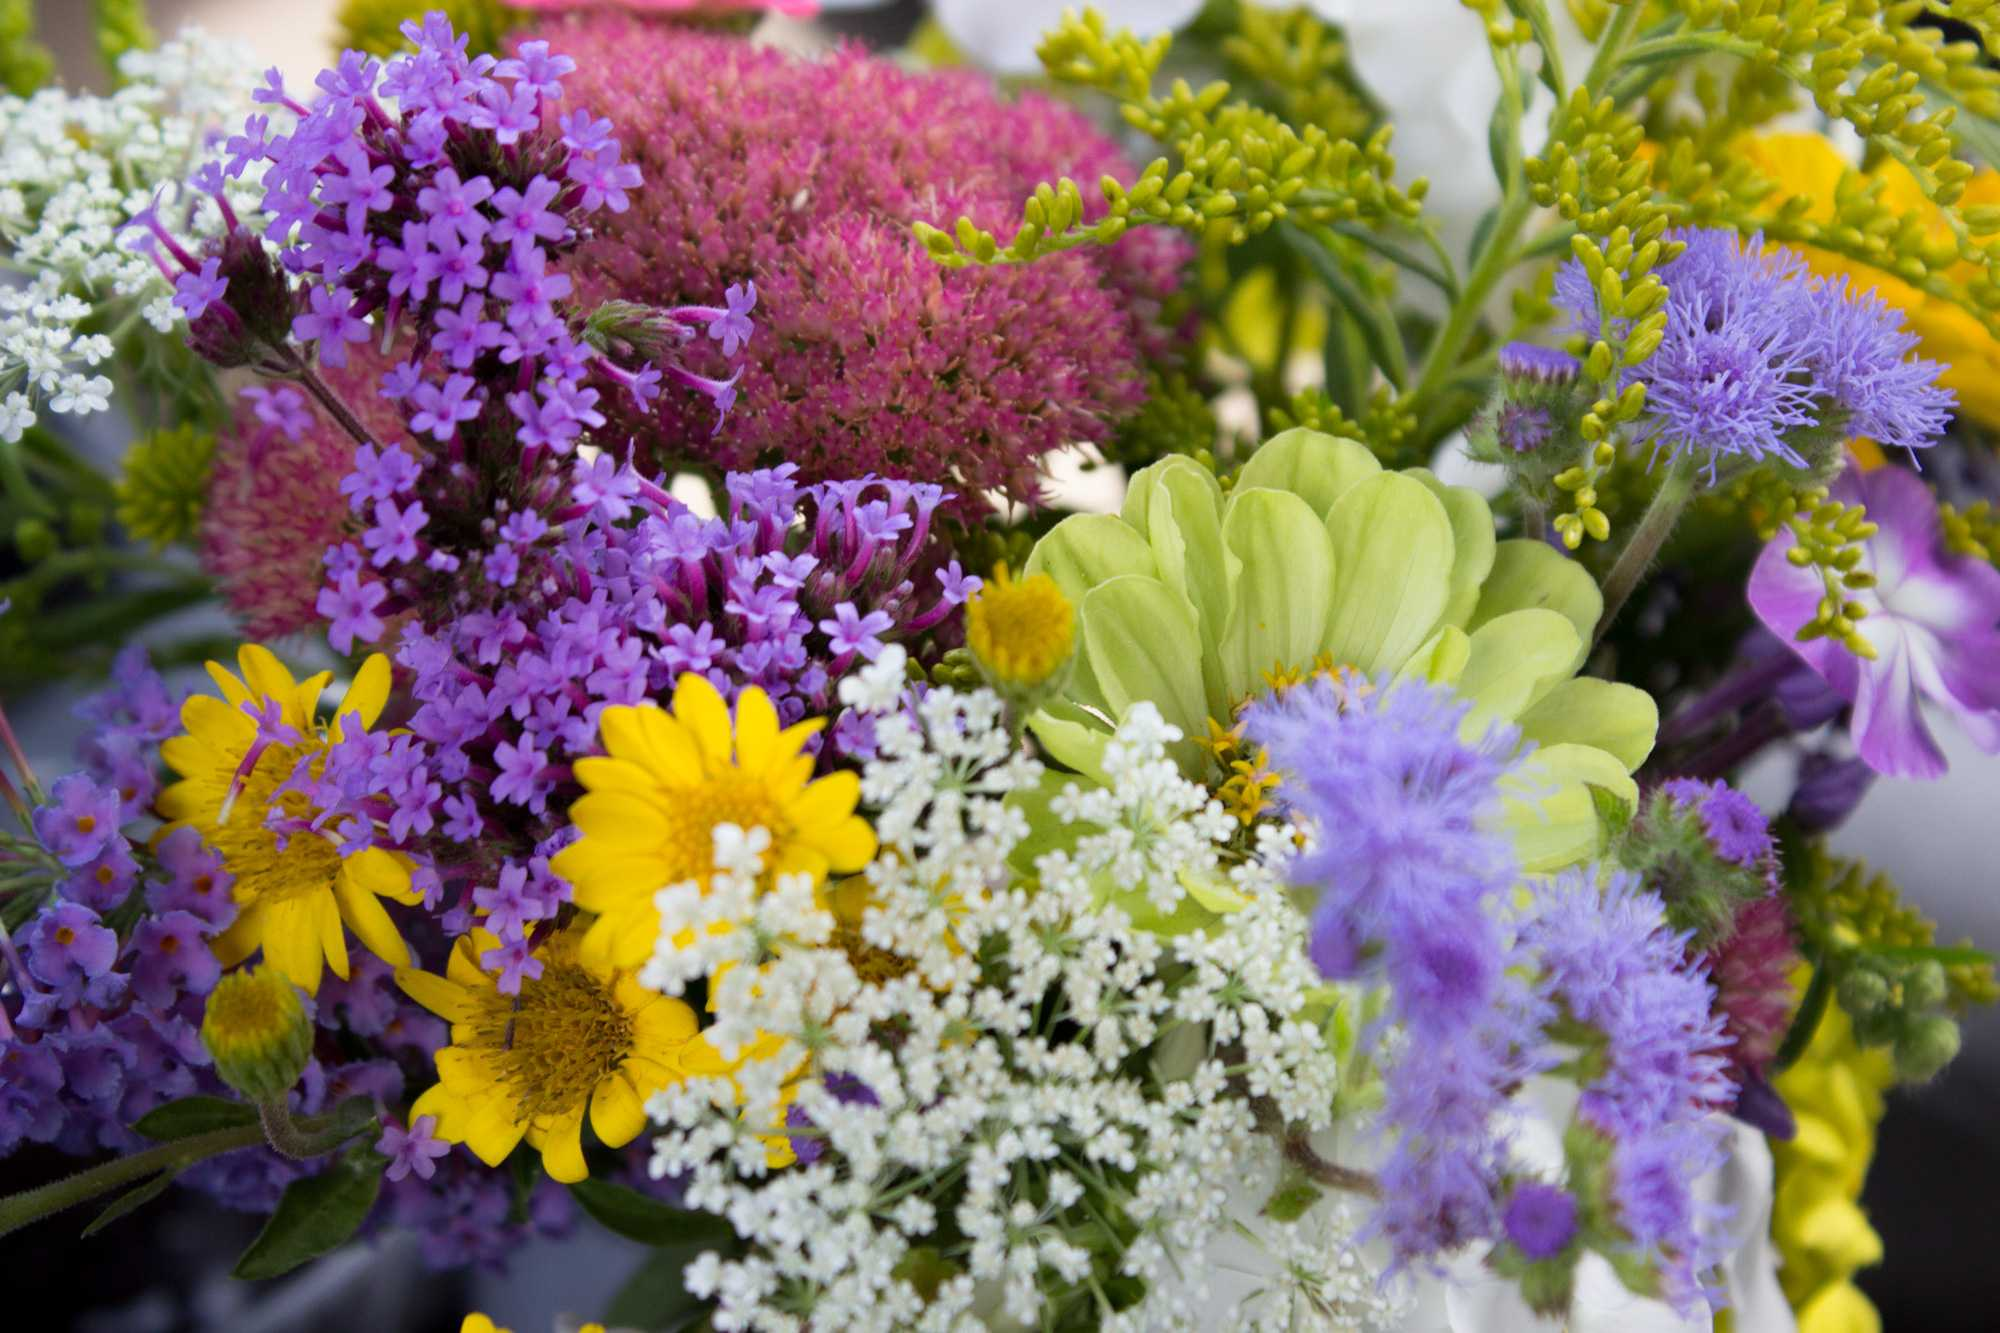 A bouquet of flowers from New Life Farm in Lenoir, NC